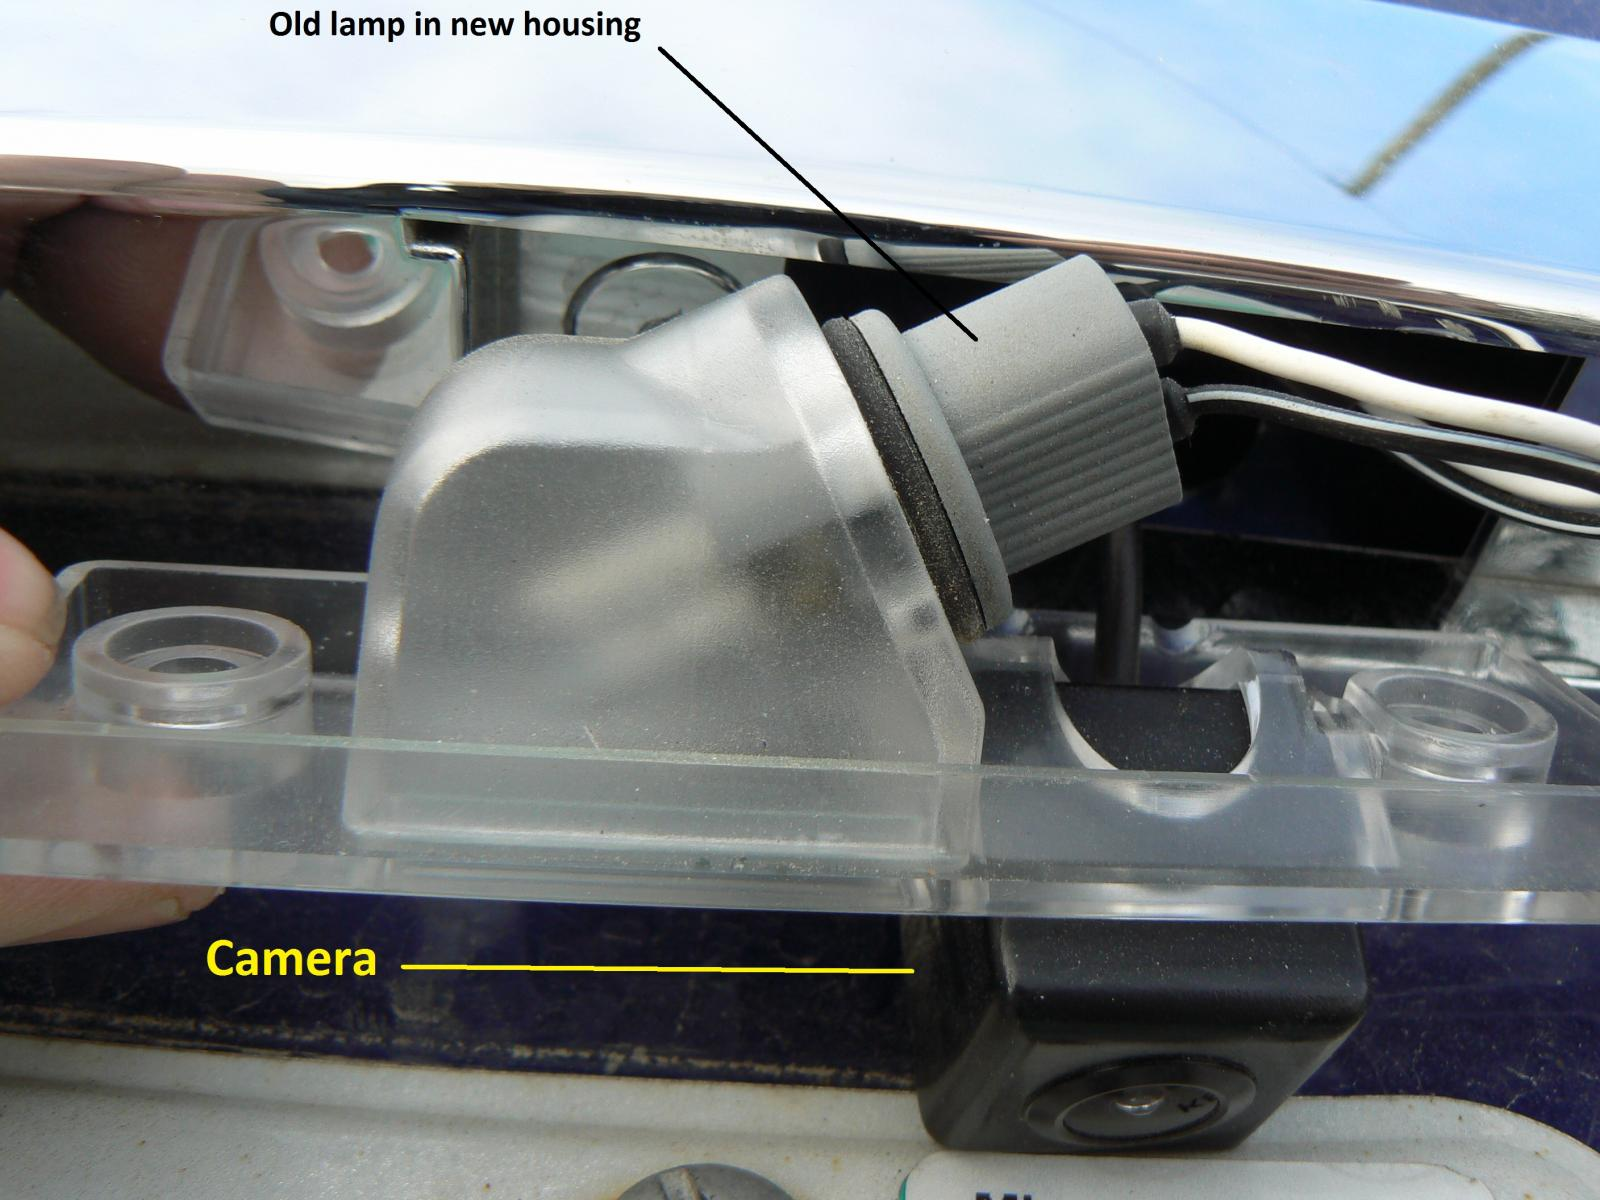 Back Up Cam D74ts Wiring Install 32 Diagram Images Reversing Camera 10409d1359122146 How Cheaply New Lampcam Cruze Reverse Diagrams